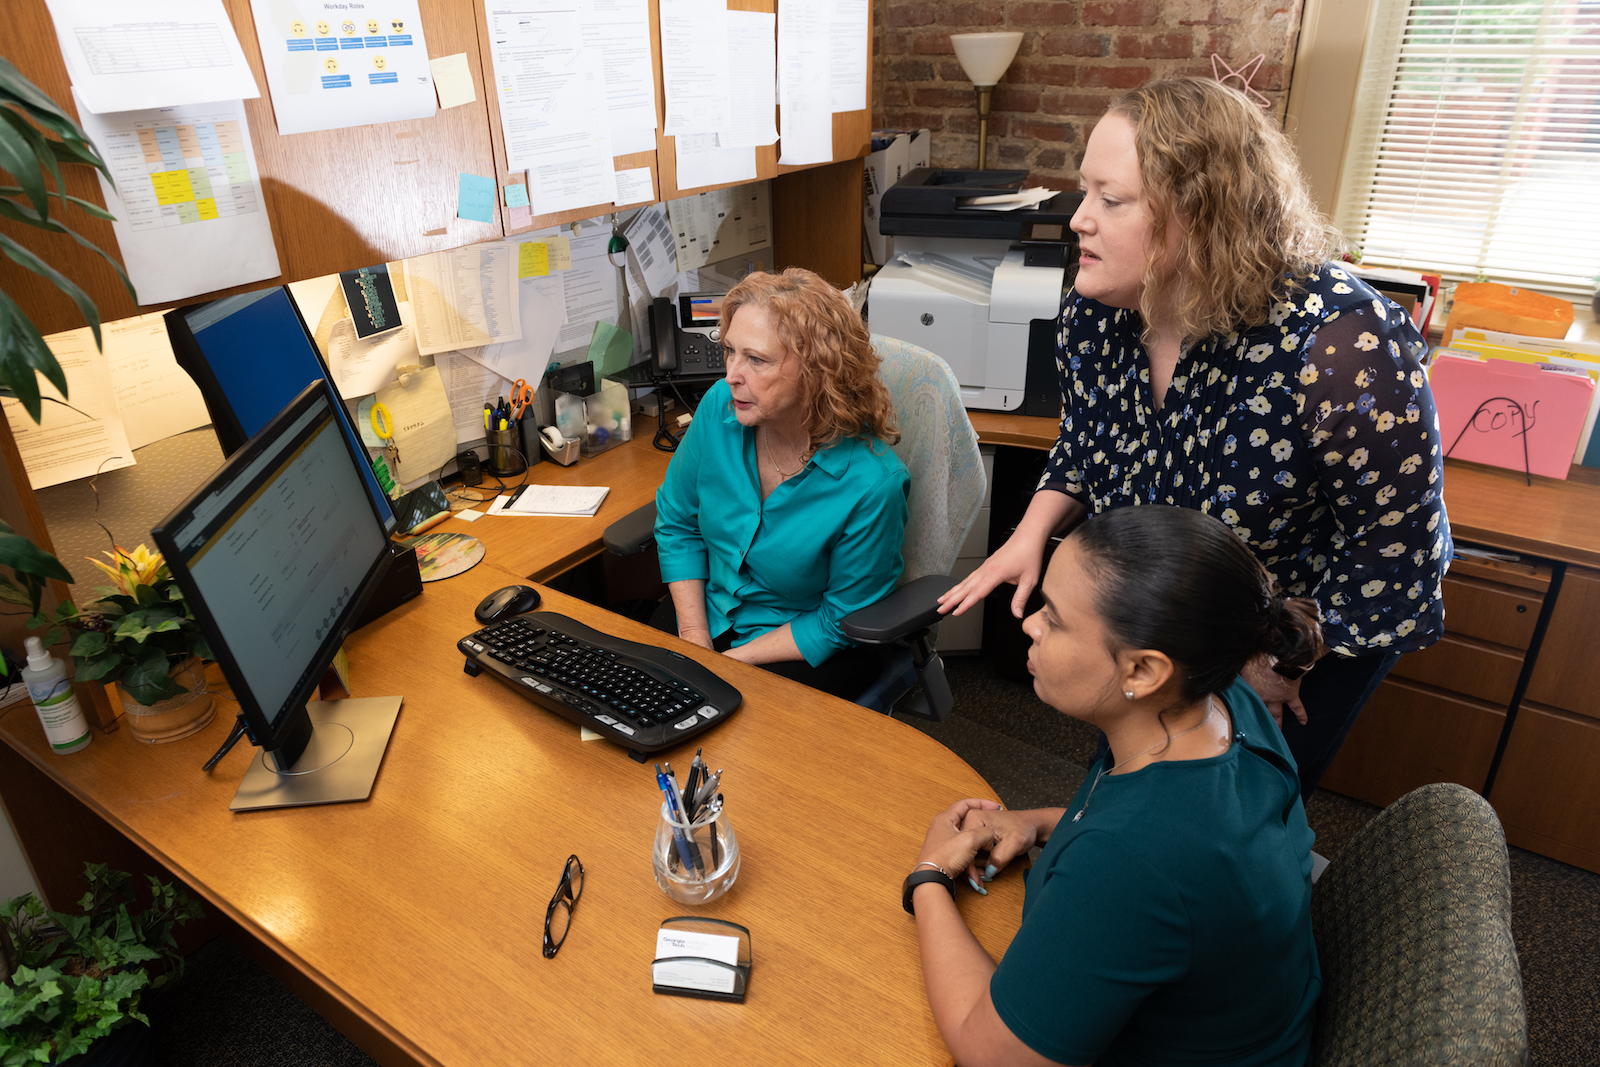 Erin Nagle (standing) discuss PROMOTE software with the School of Psychology's Leslie Dionne-White (left) and Kristie Clark.